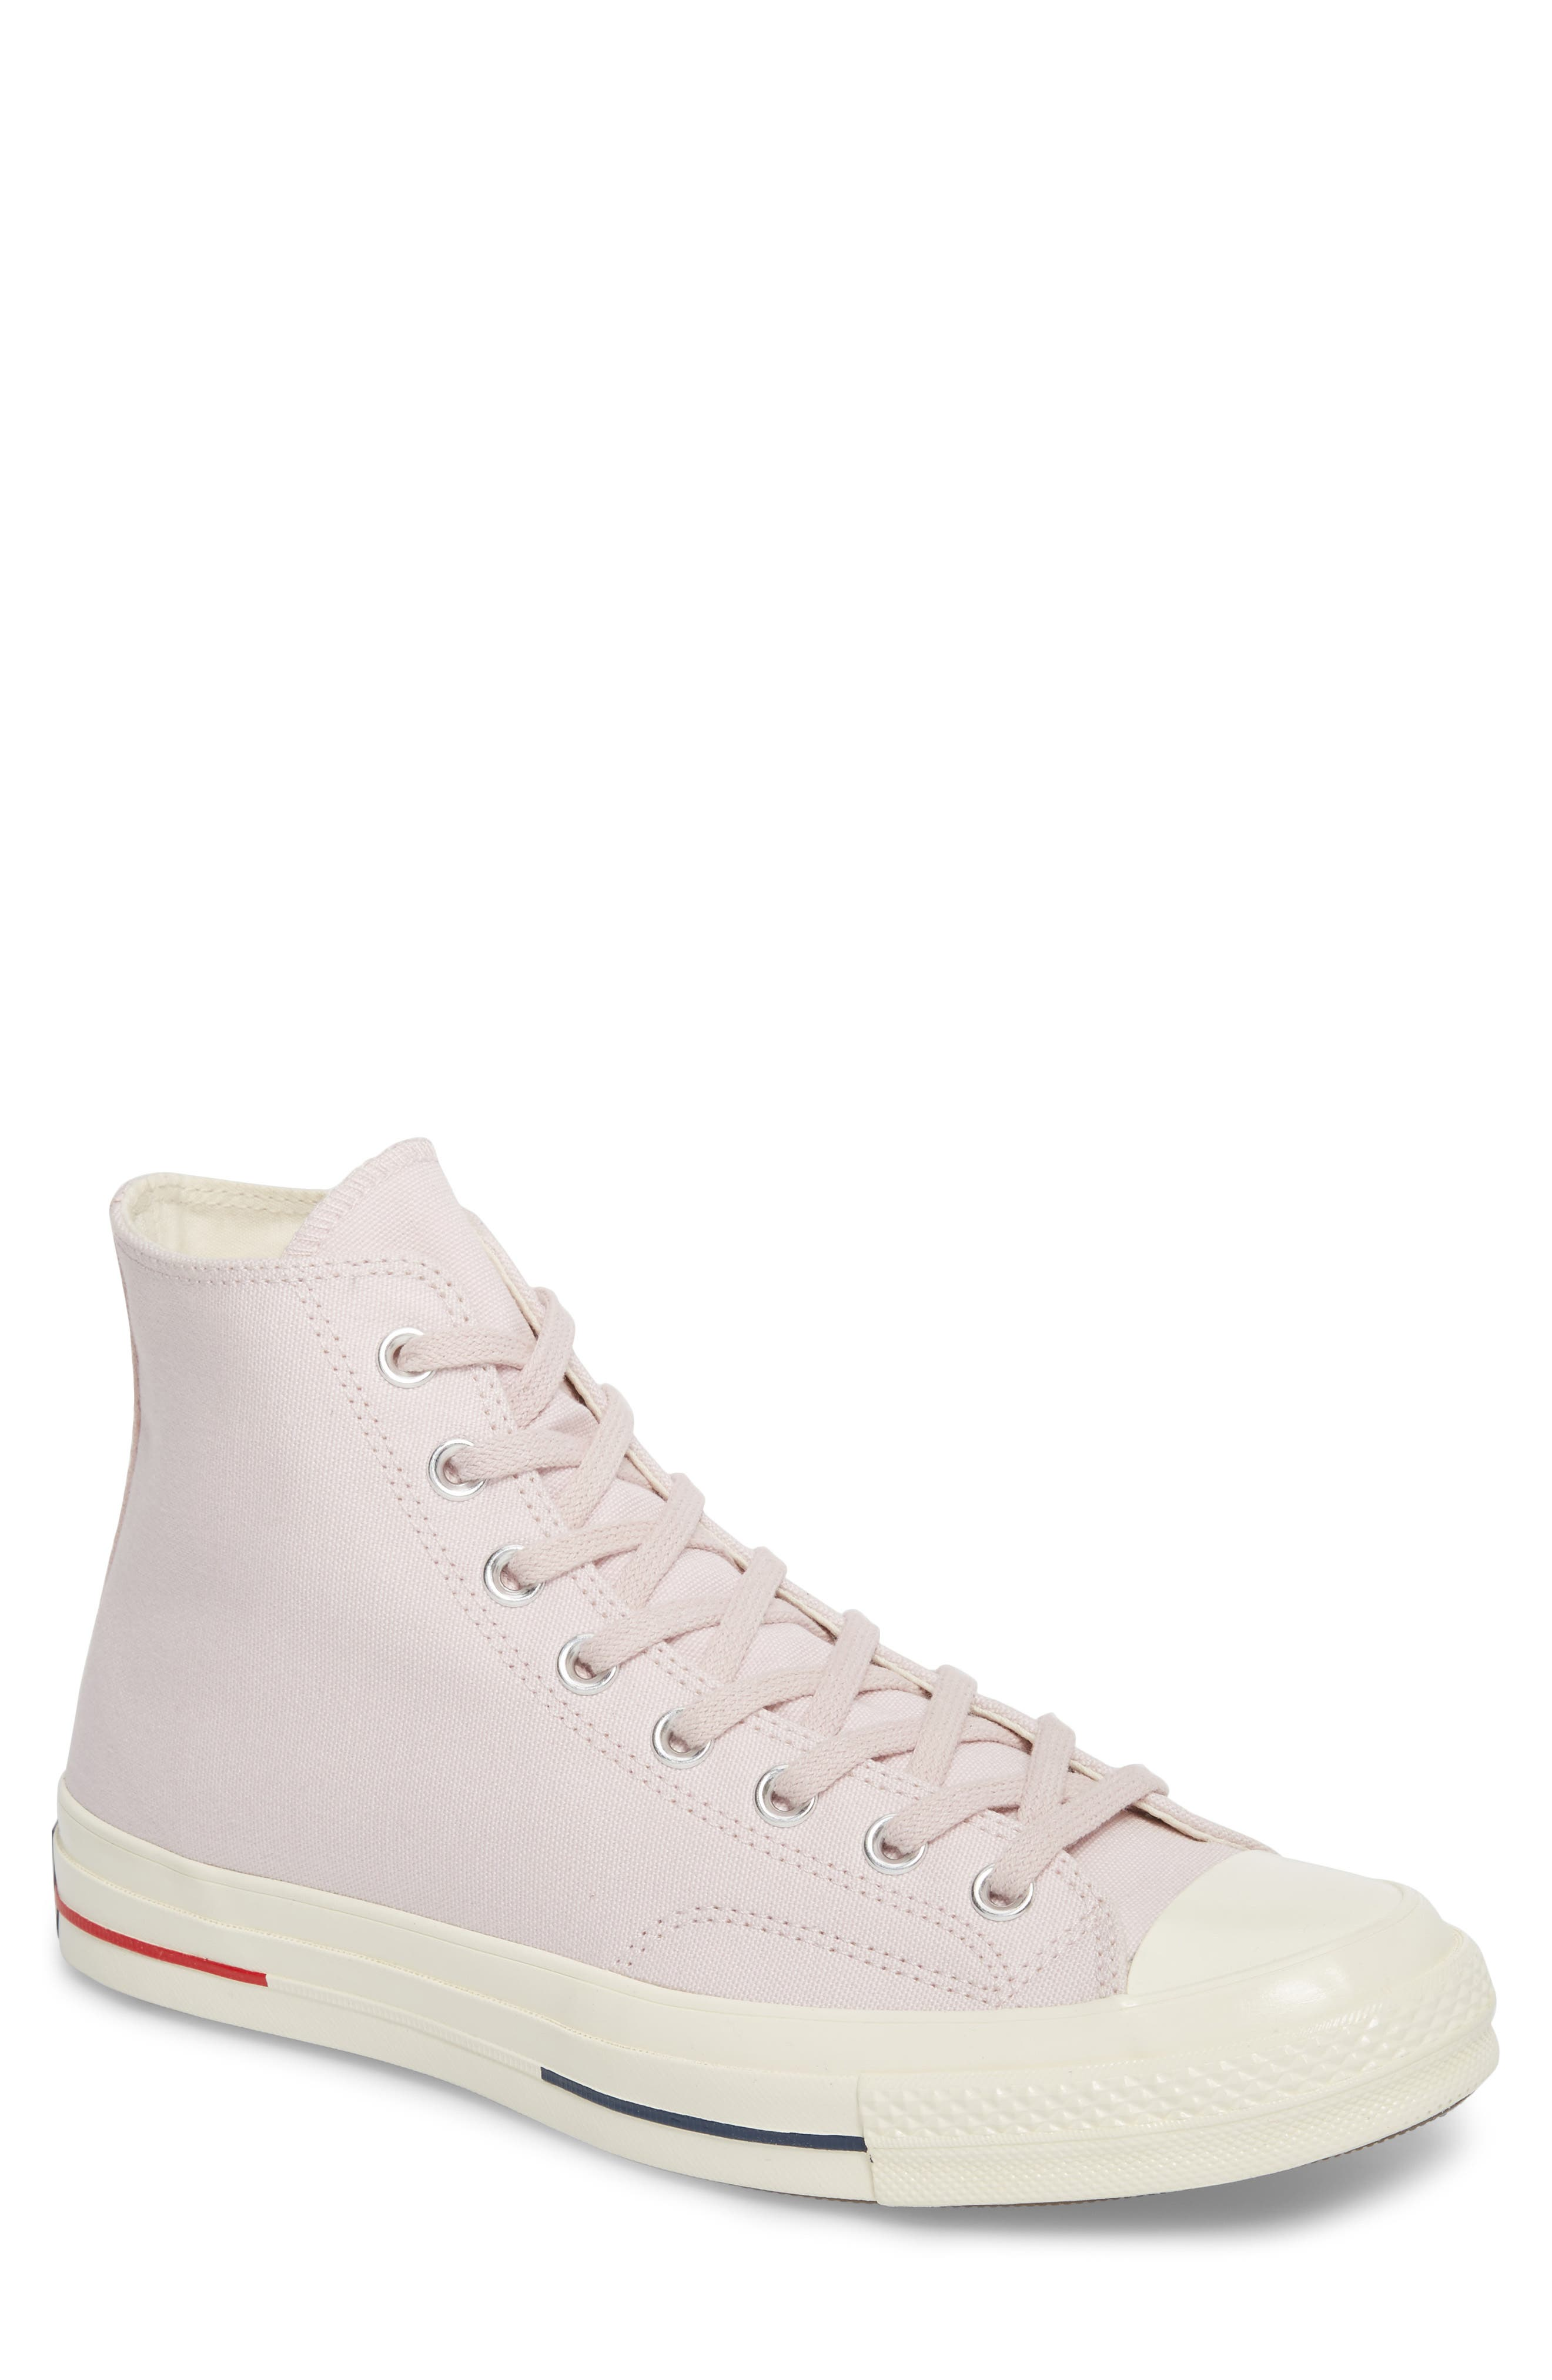 Chuck Taylor<sup>®</sup> All Star<sup>®</sup> '70 Heritage High Top Sneaker,                             Main thumbnail 1, color,                             Barely Rose